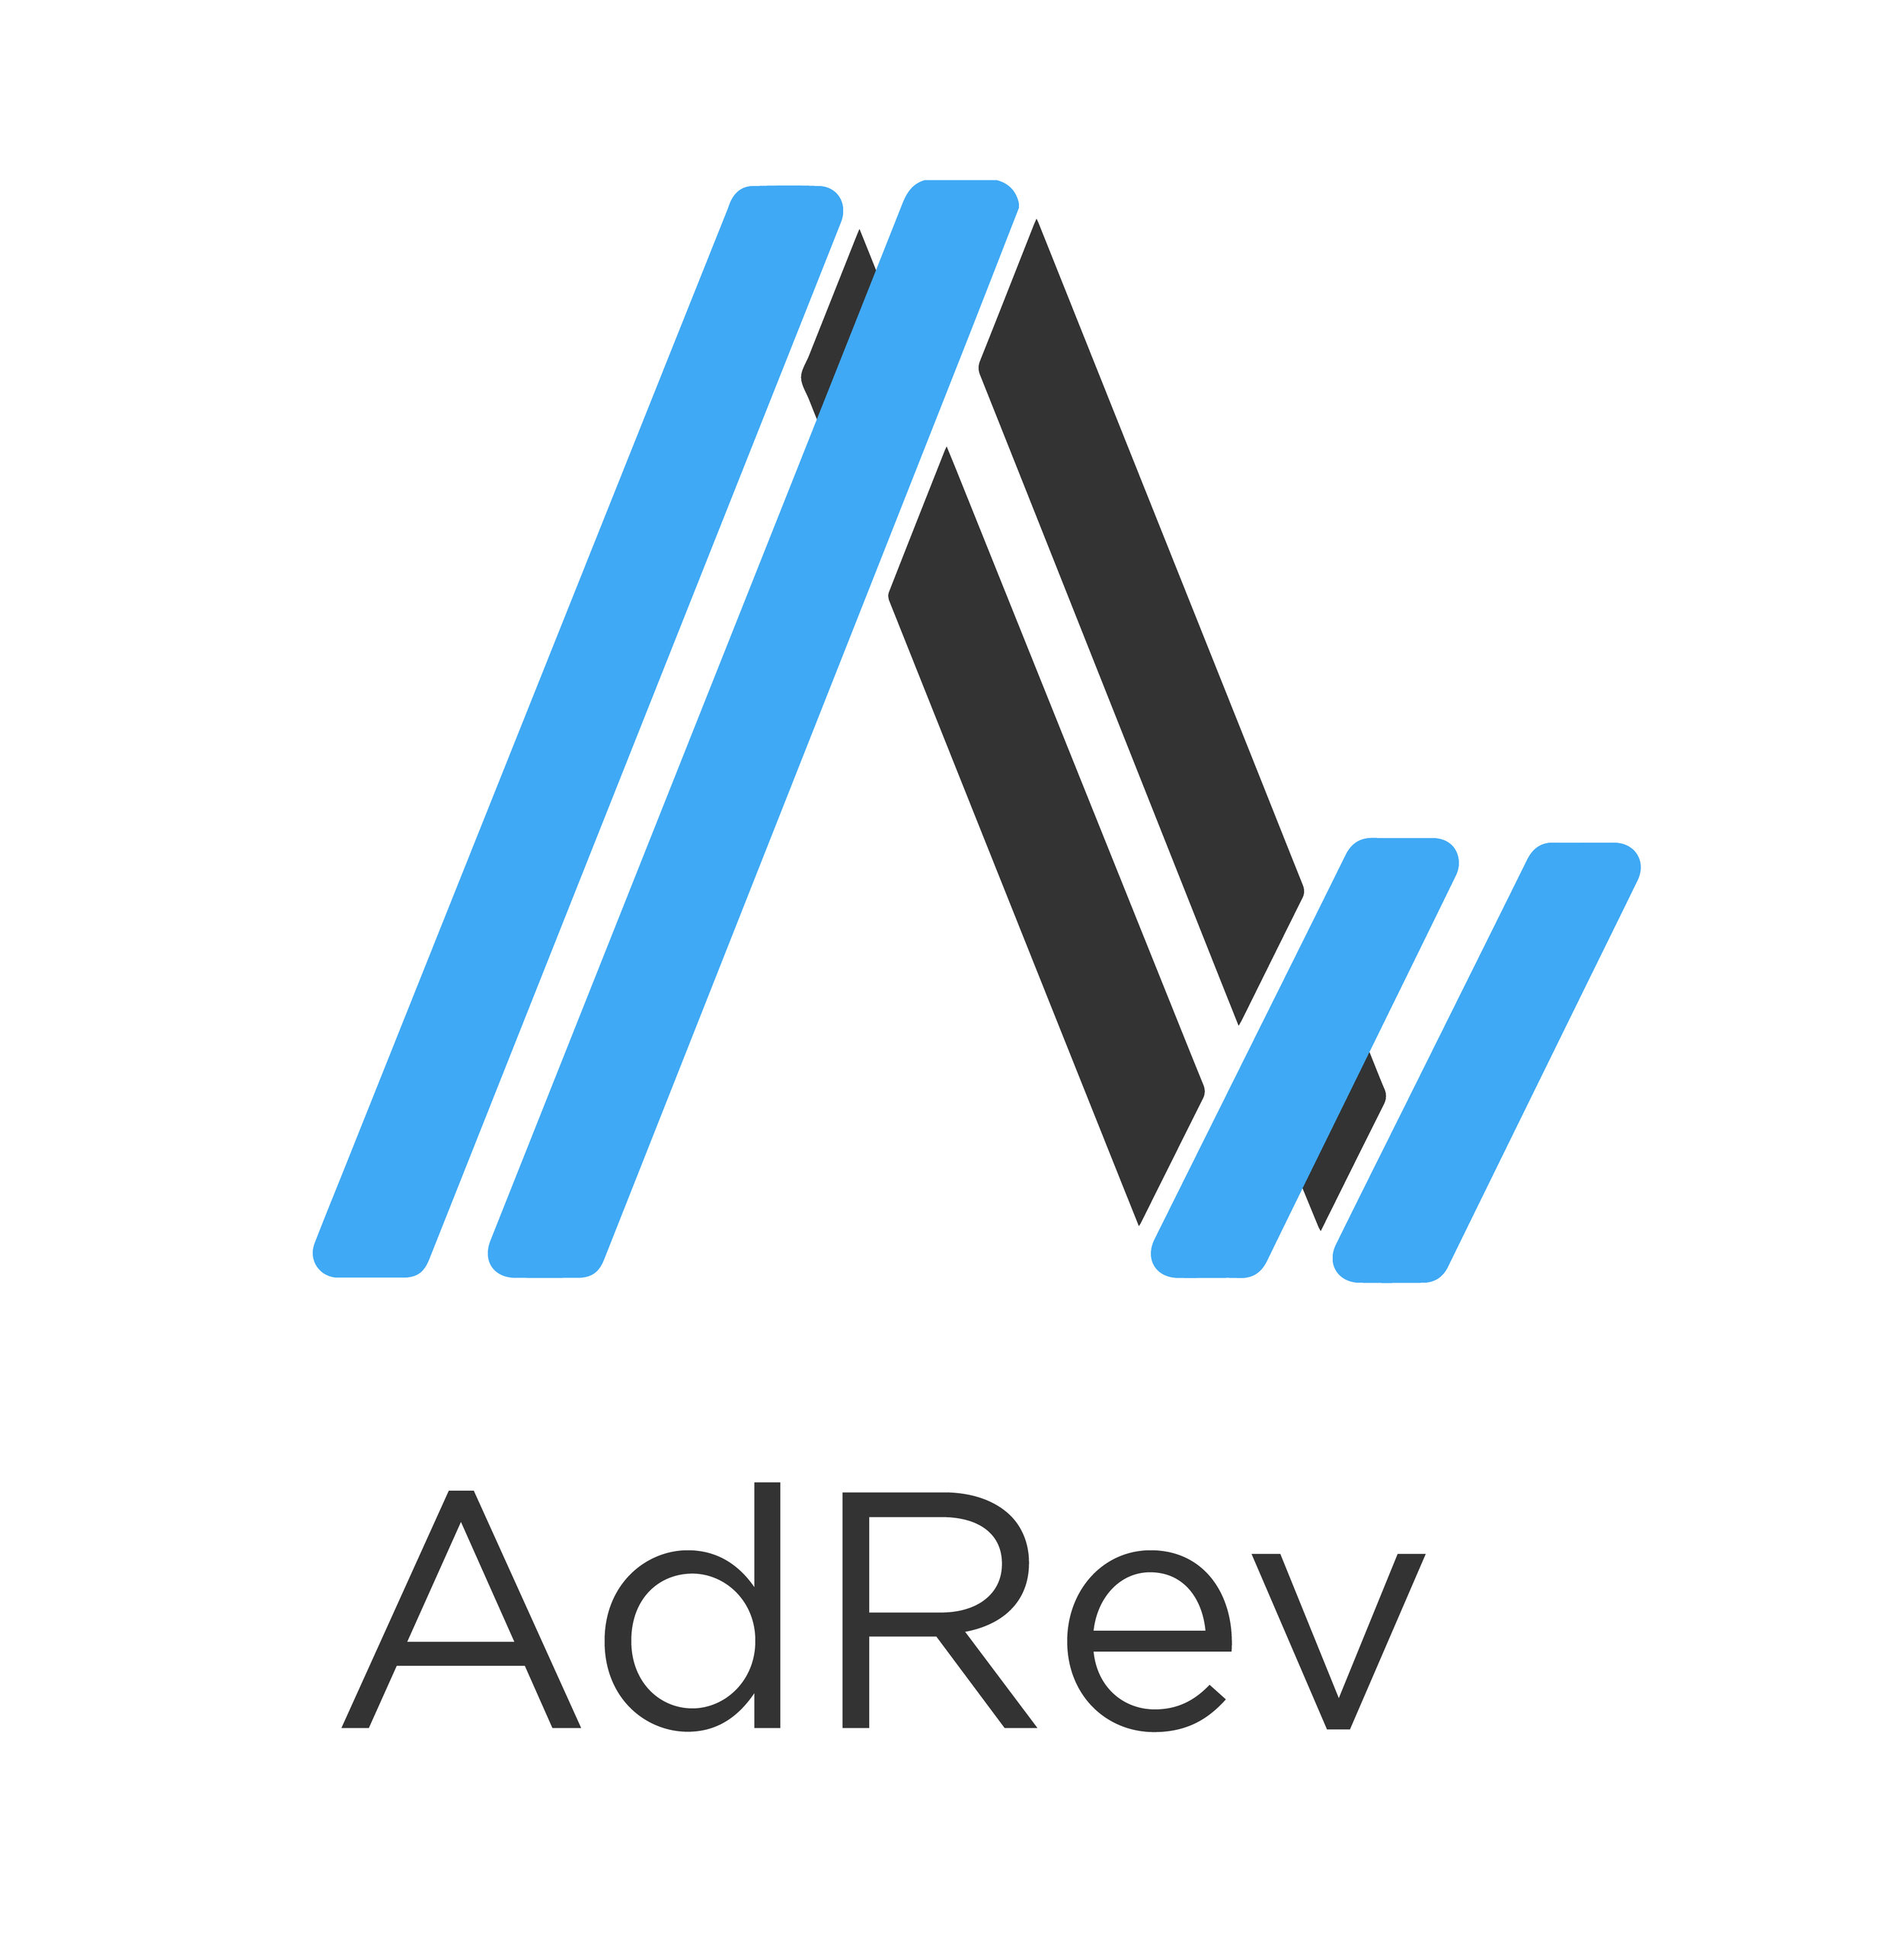 60663-Adrev_logo_final_stacked.jpg